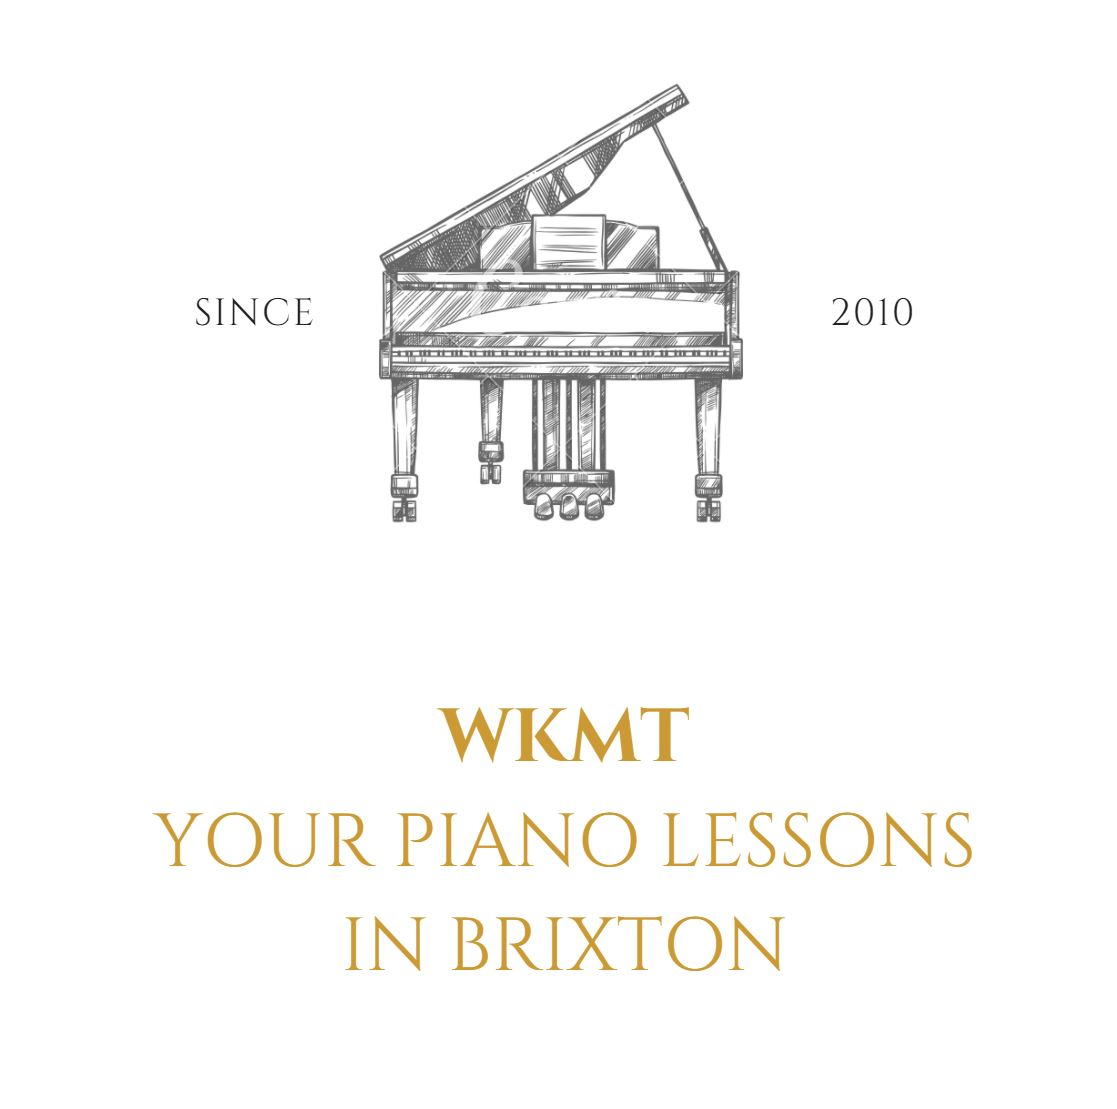 Piano lessons in Brixton by WKMT